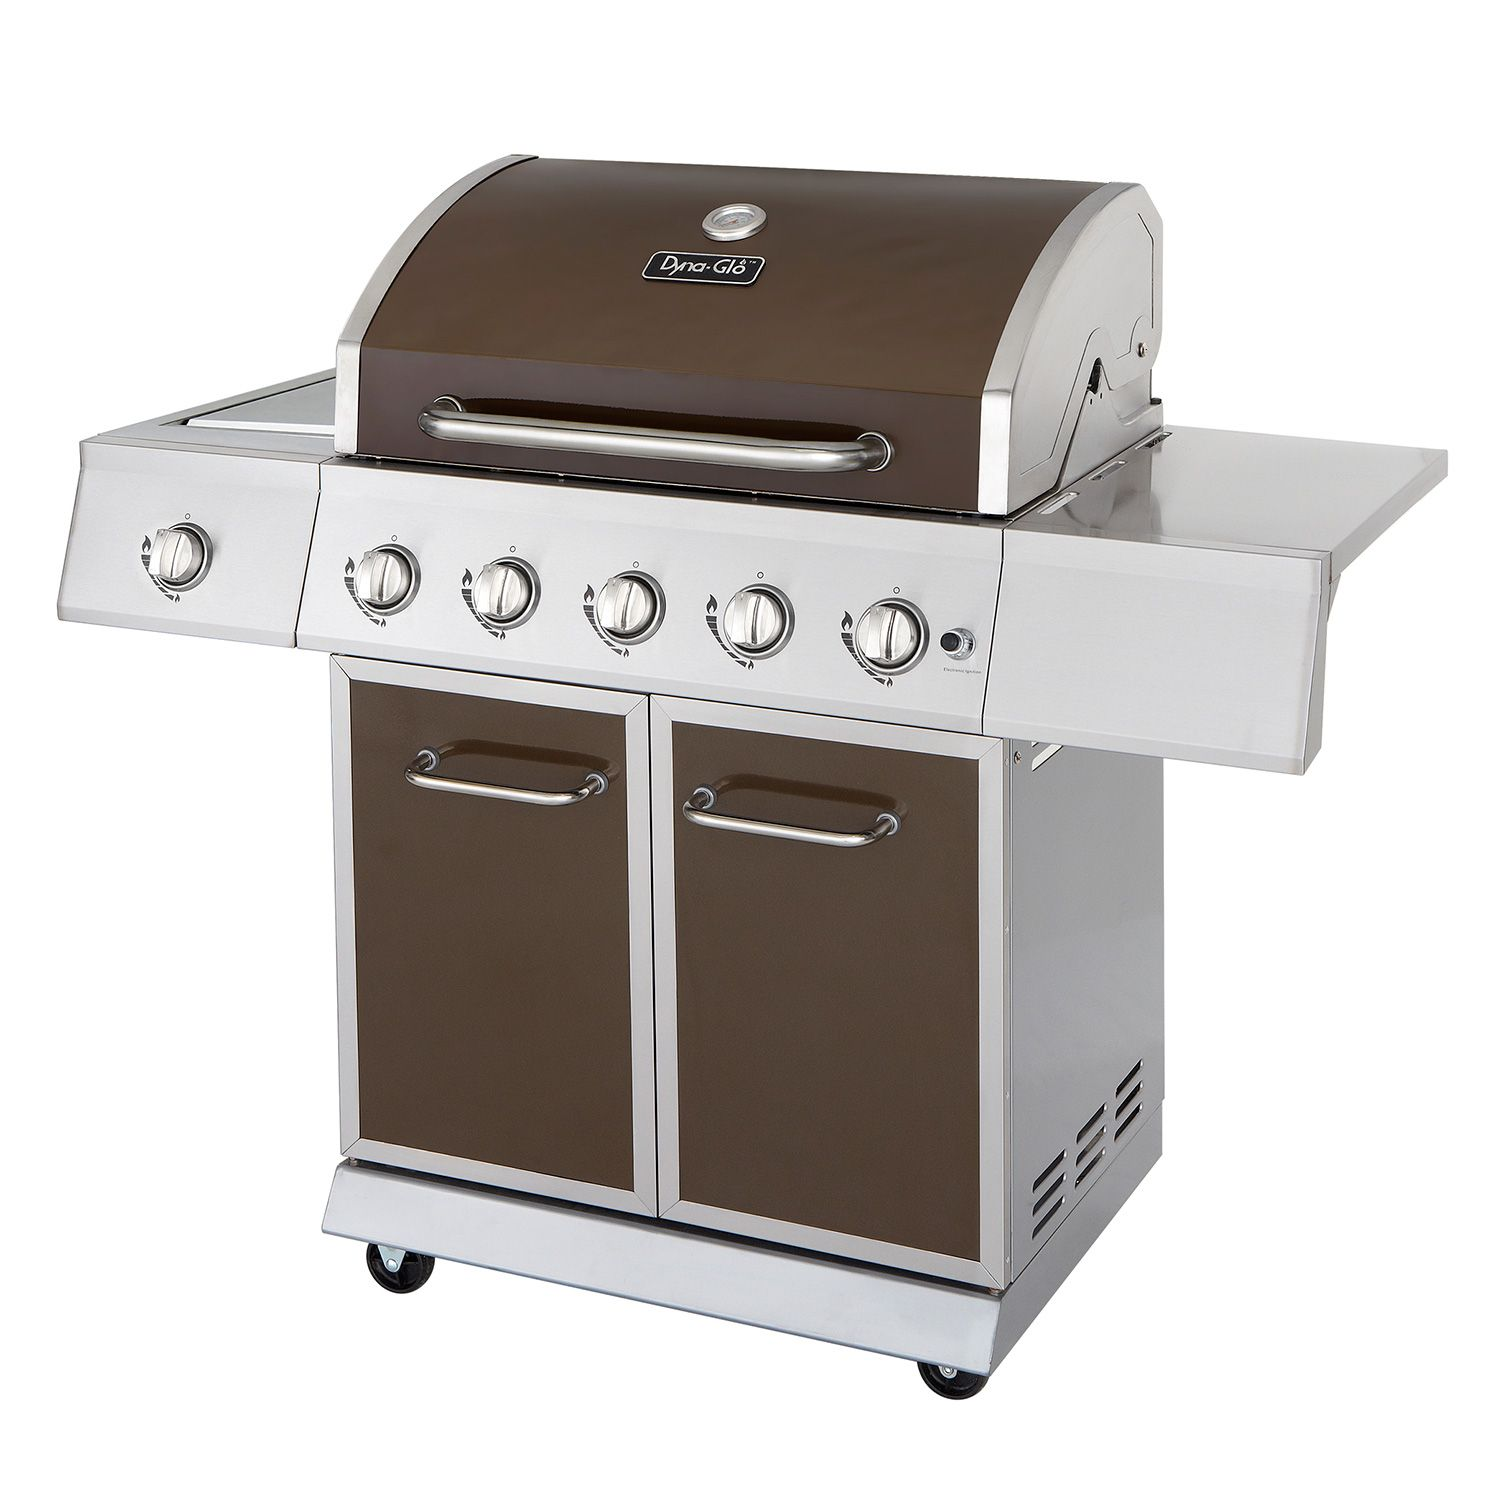 Dyna-Glo Bronze 60,000 BTU 4 Propane LP Gas Grill with Side Burner at Sears.com